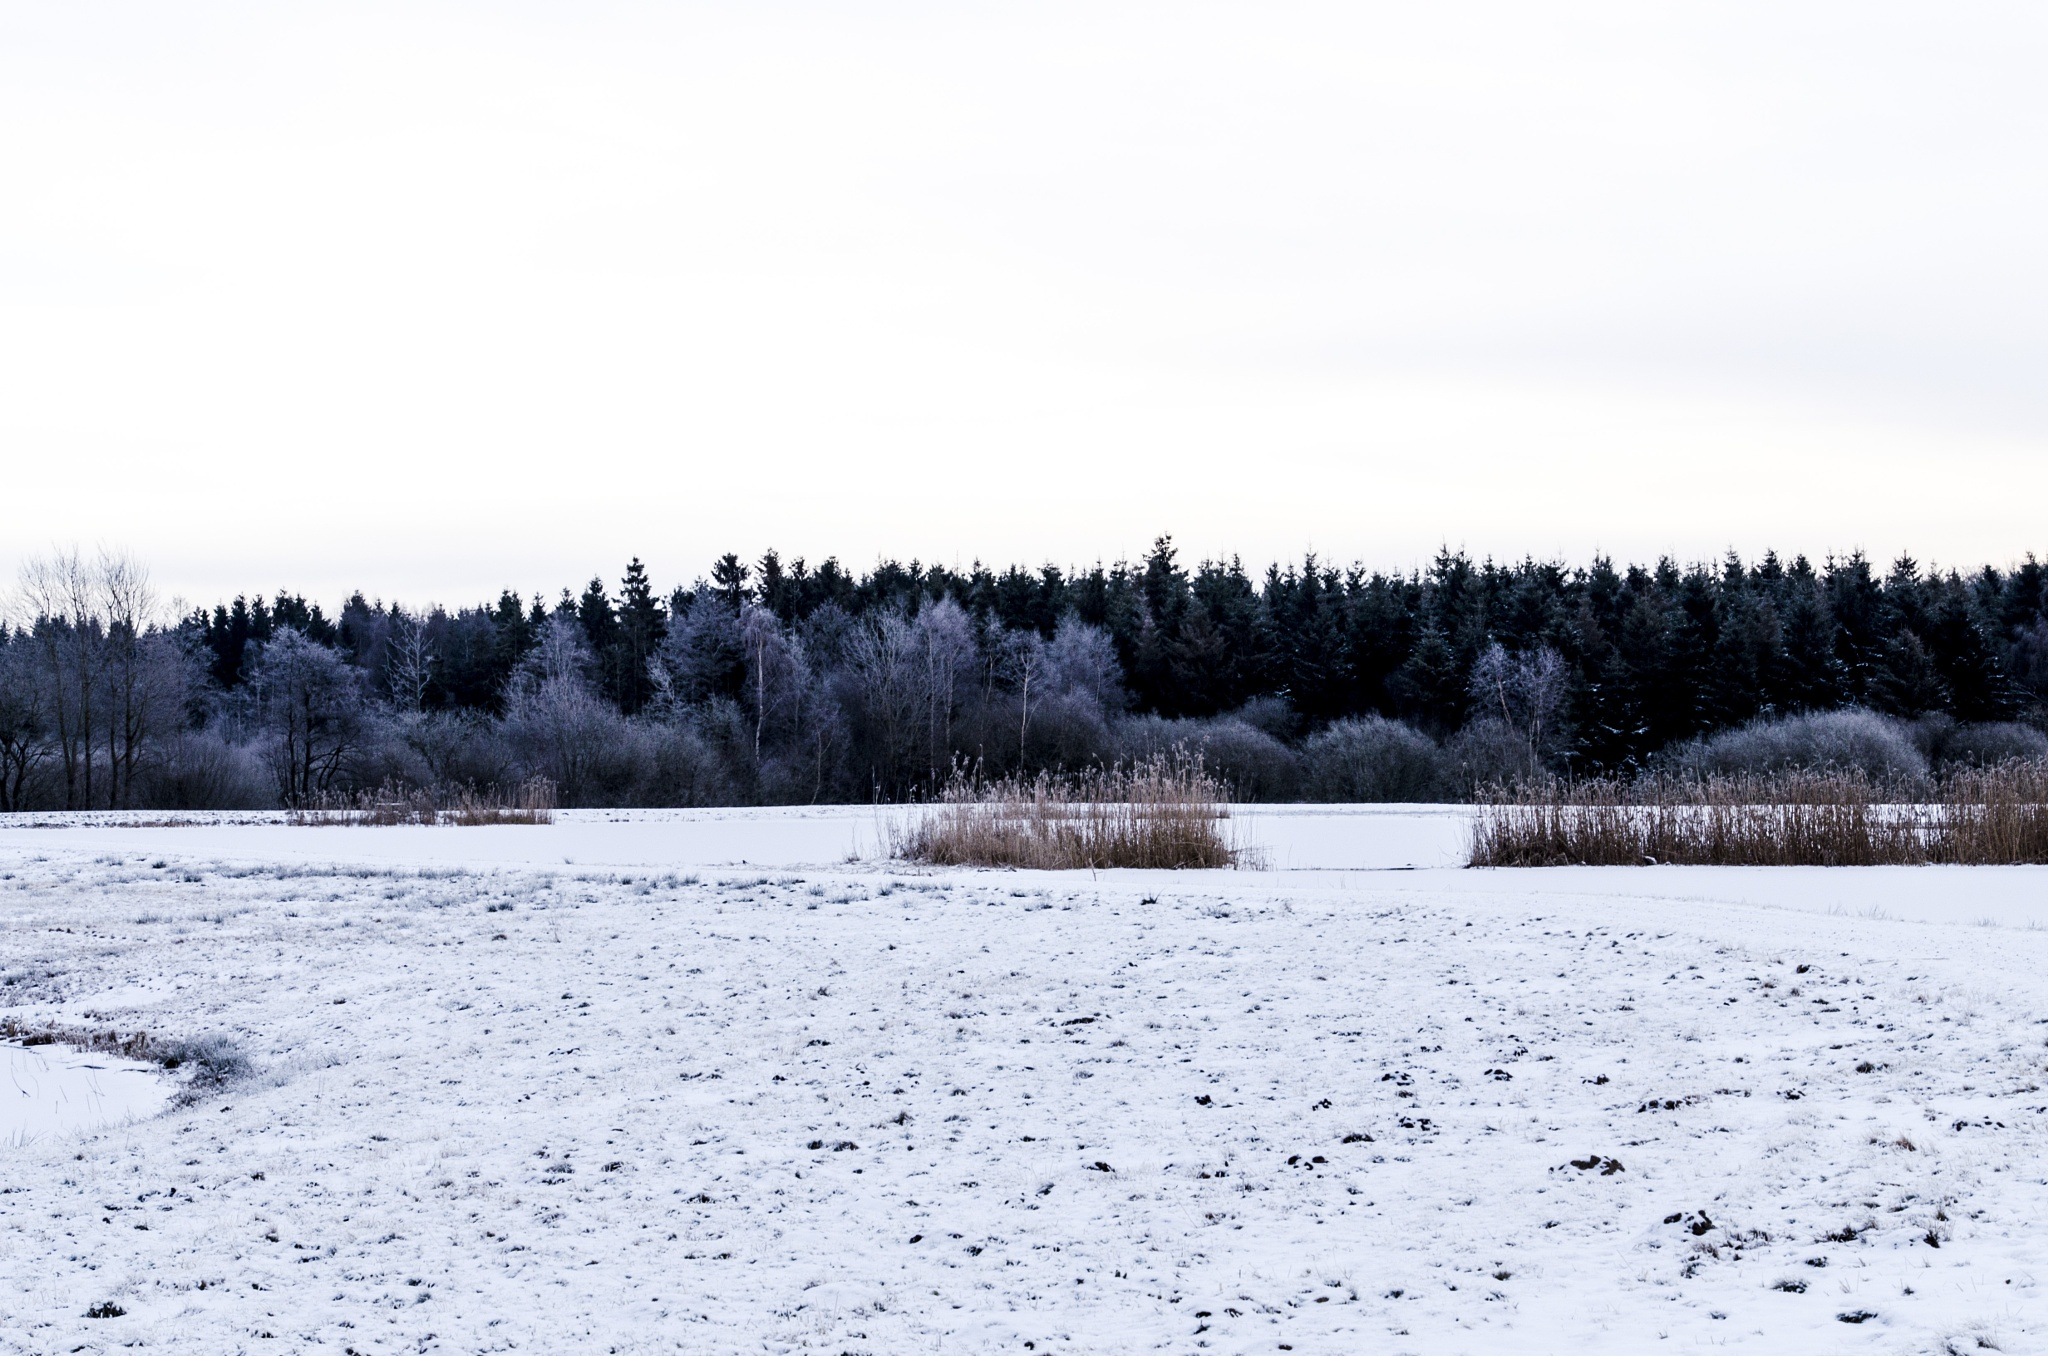 The wetland in winter by Johnny Lythell